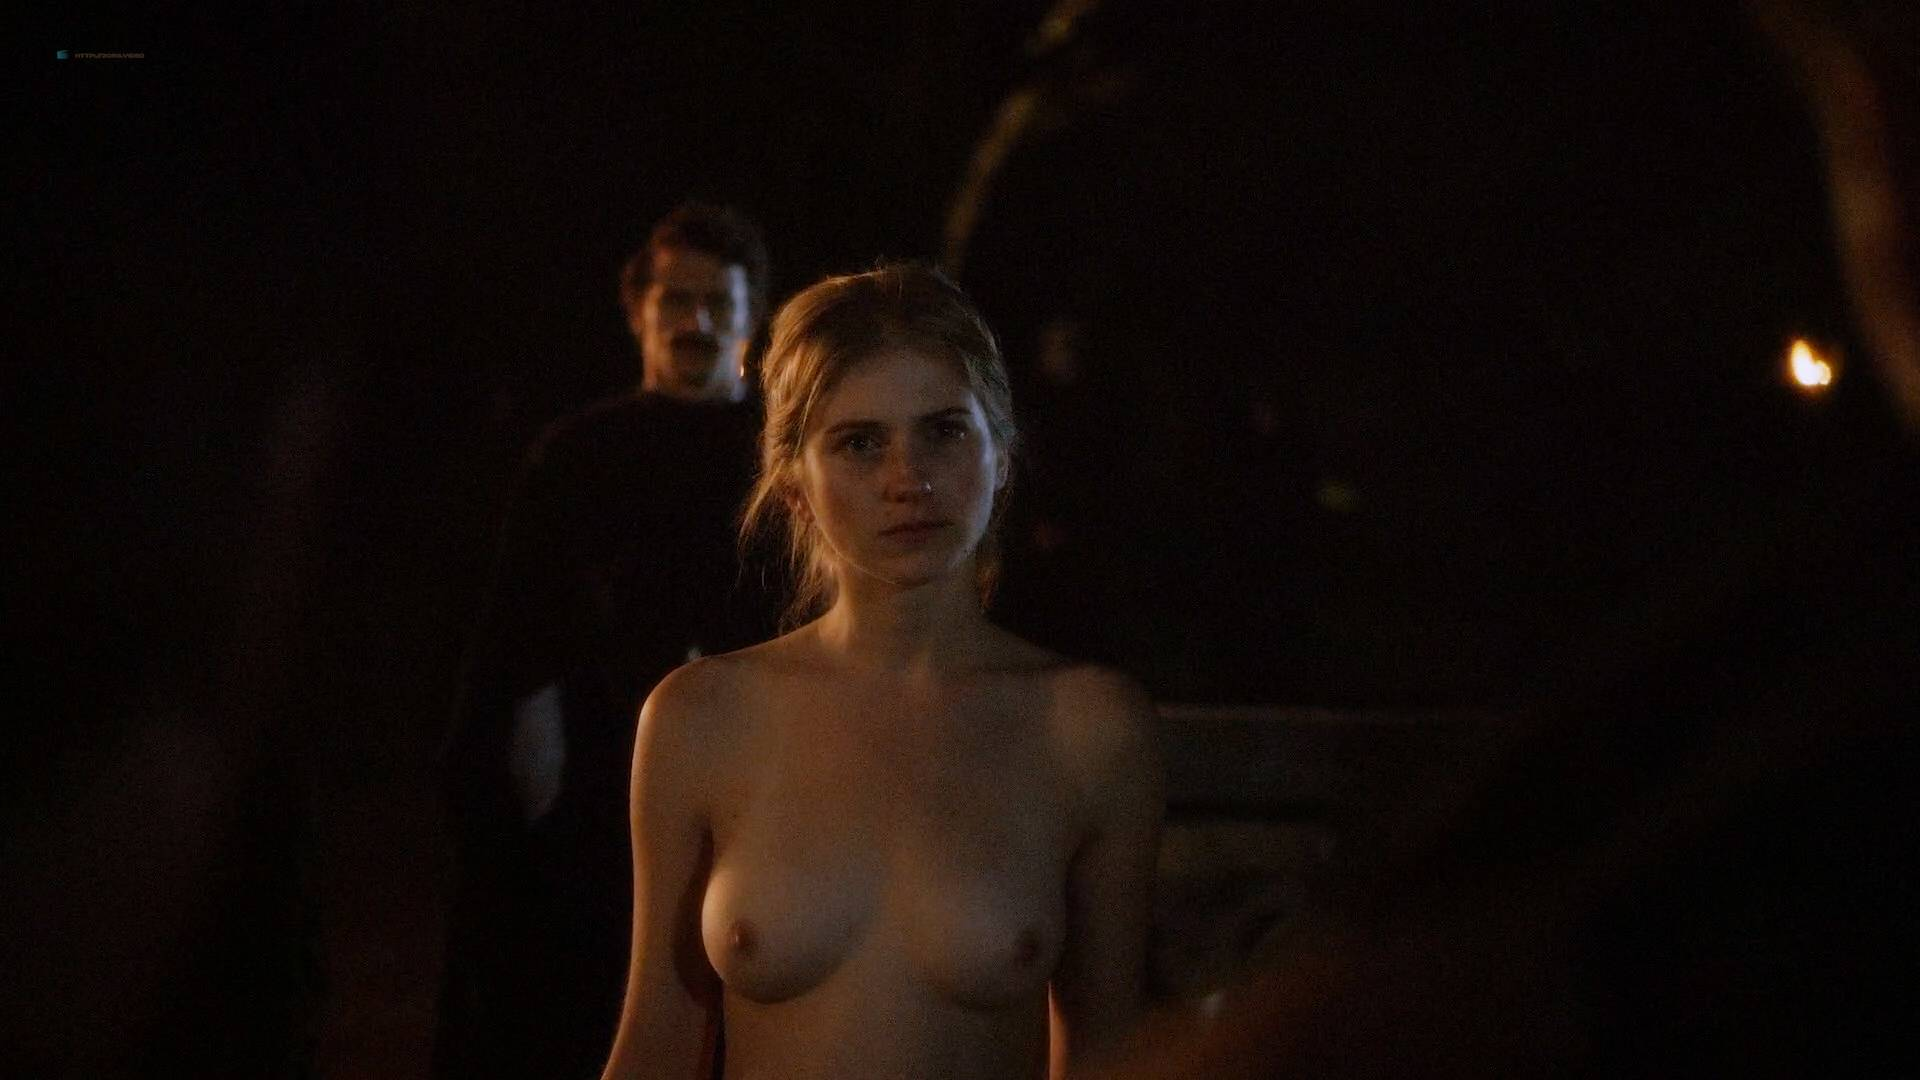 Allie Gallerani nude full frontal Amber Coney, Zoe Bleu, and other's nude too - The Institute (2017) HD 1080p Web (16)